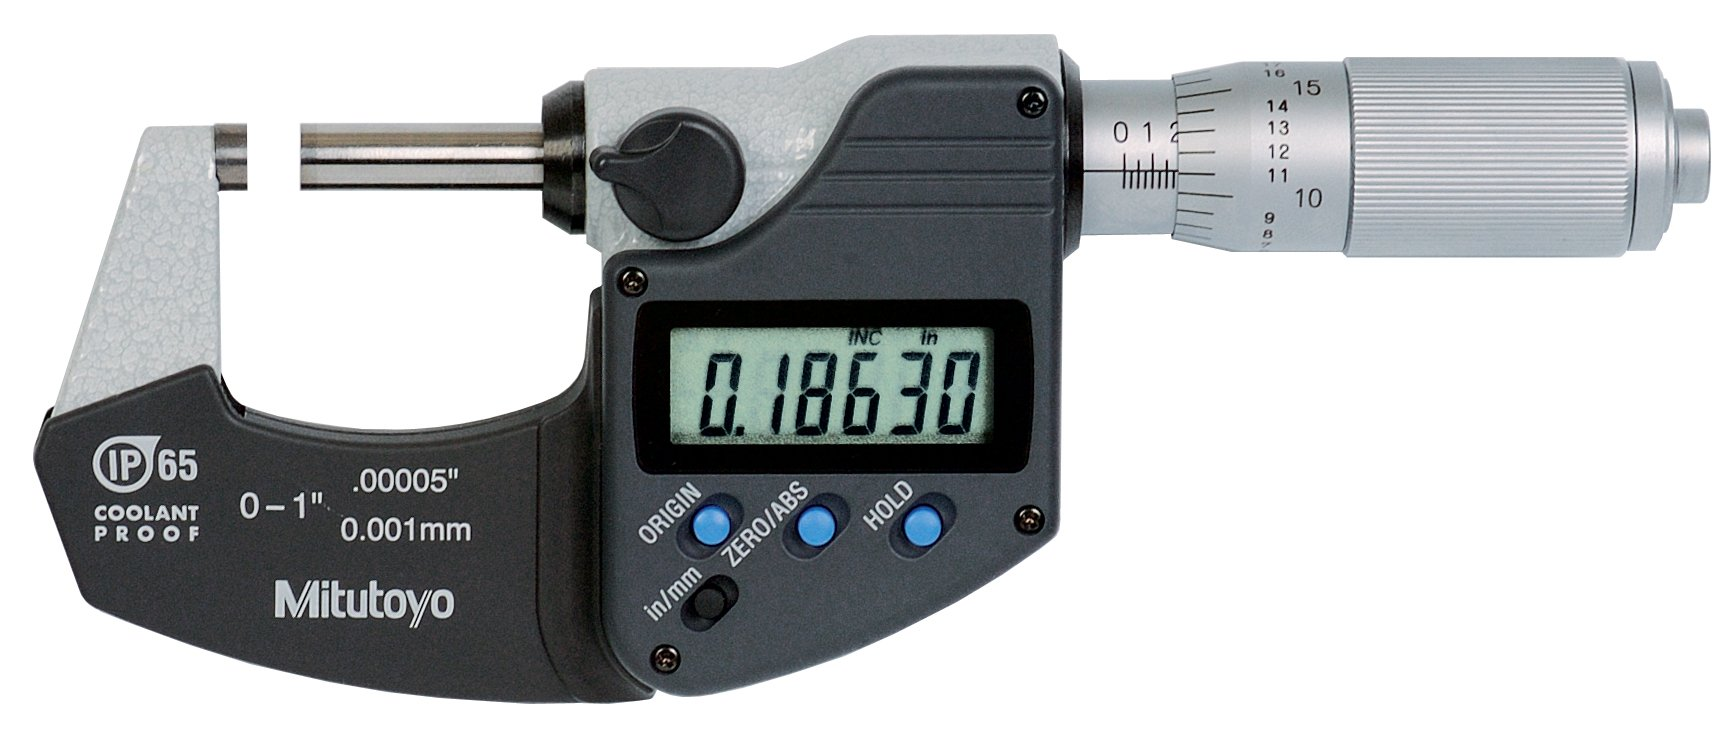 "Mitutoyo 293-348 Digital Outside Micrometer, Inch/Metric, Friction Thimble, 0-1"" (0-25.4mm) Range, 0.00005"" (0.001mm) Resolution, +/-0.00005"" Accuracy, Meets IP65 Specifications"